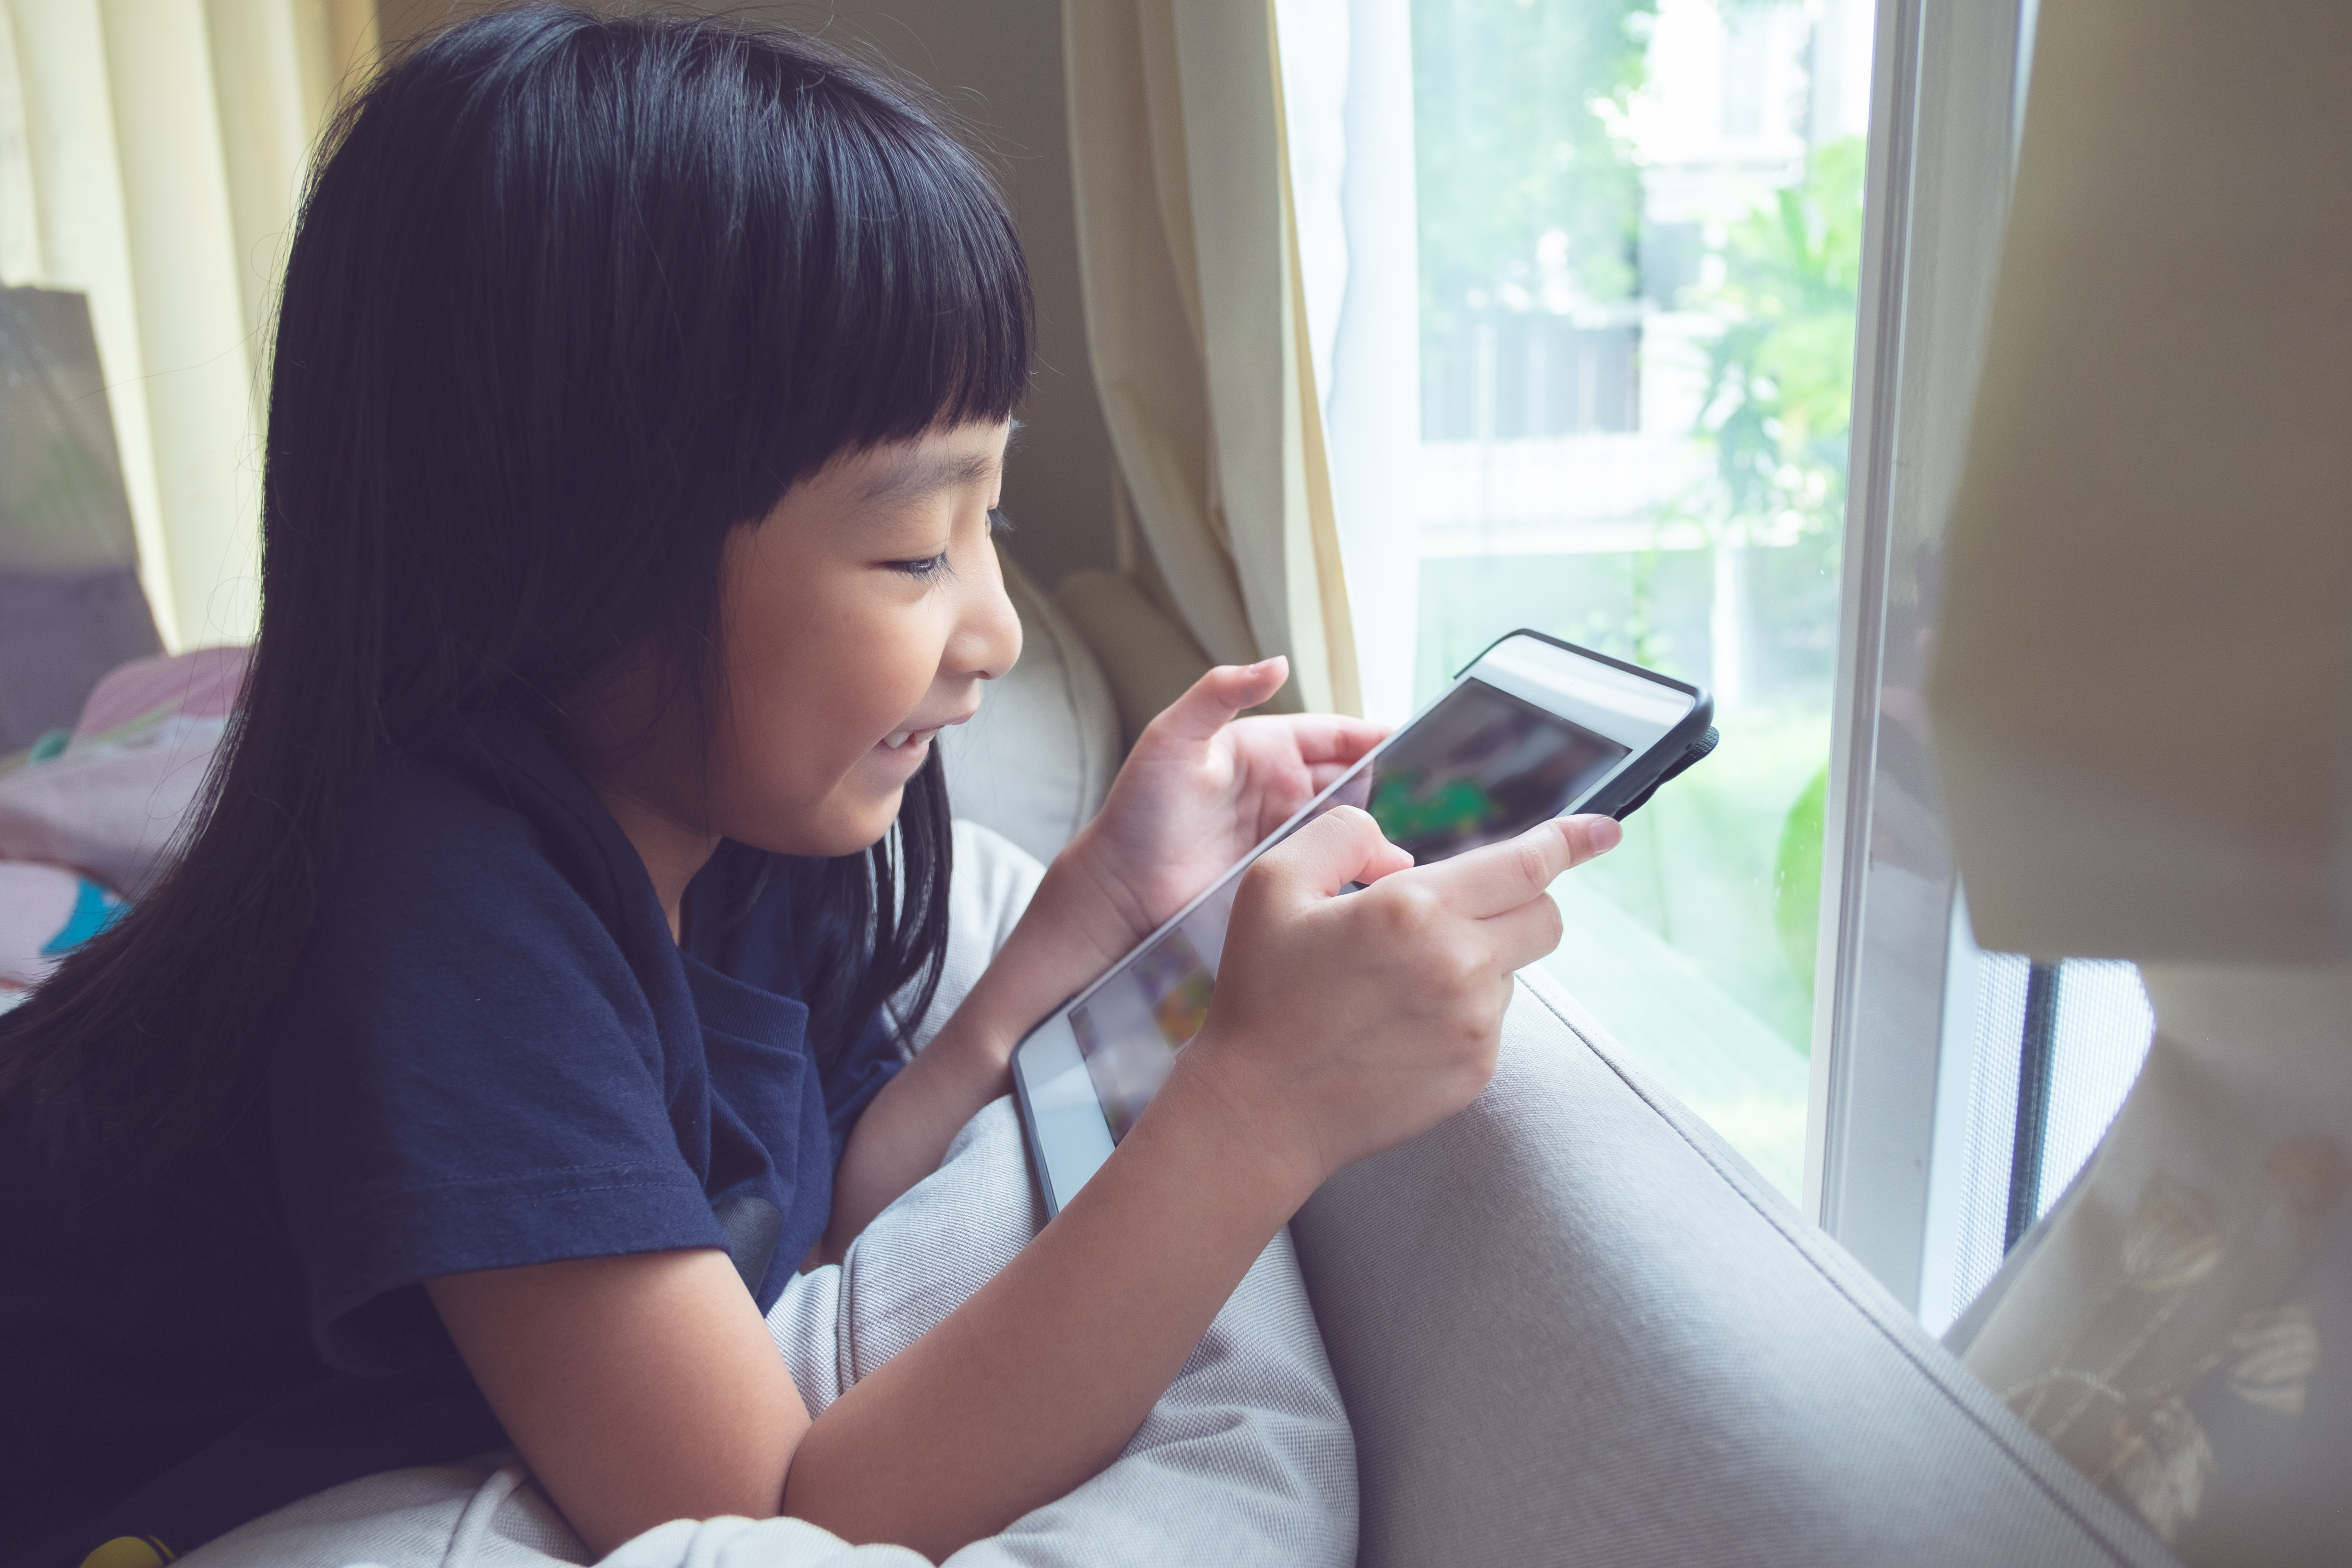 top-section-portrait-of-a-thai-little-girl-sitting-down-at-window-using-a-smart-device-in-her-hand_t20_goZYb8